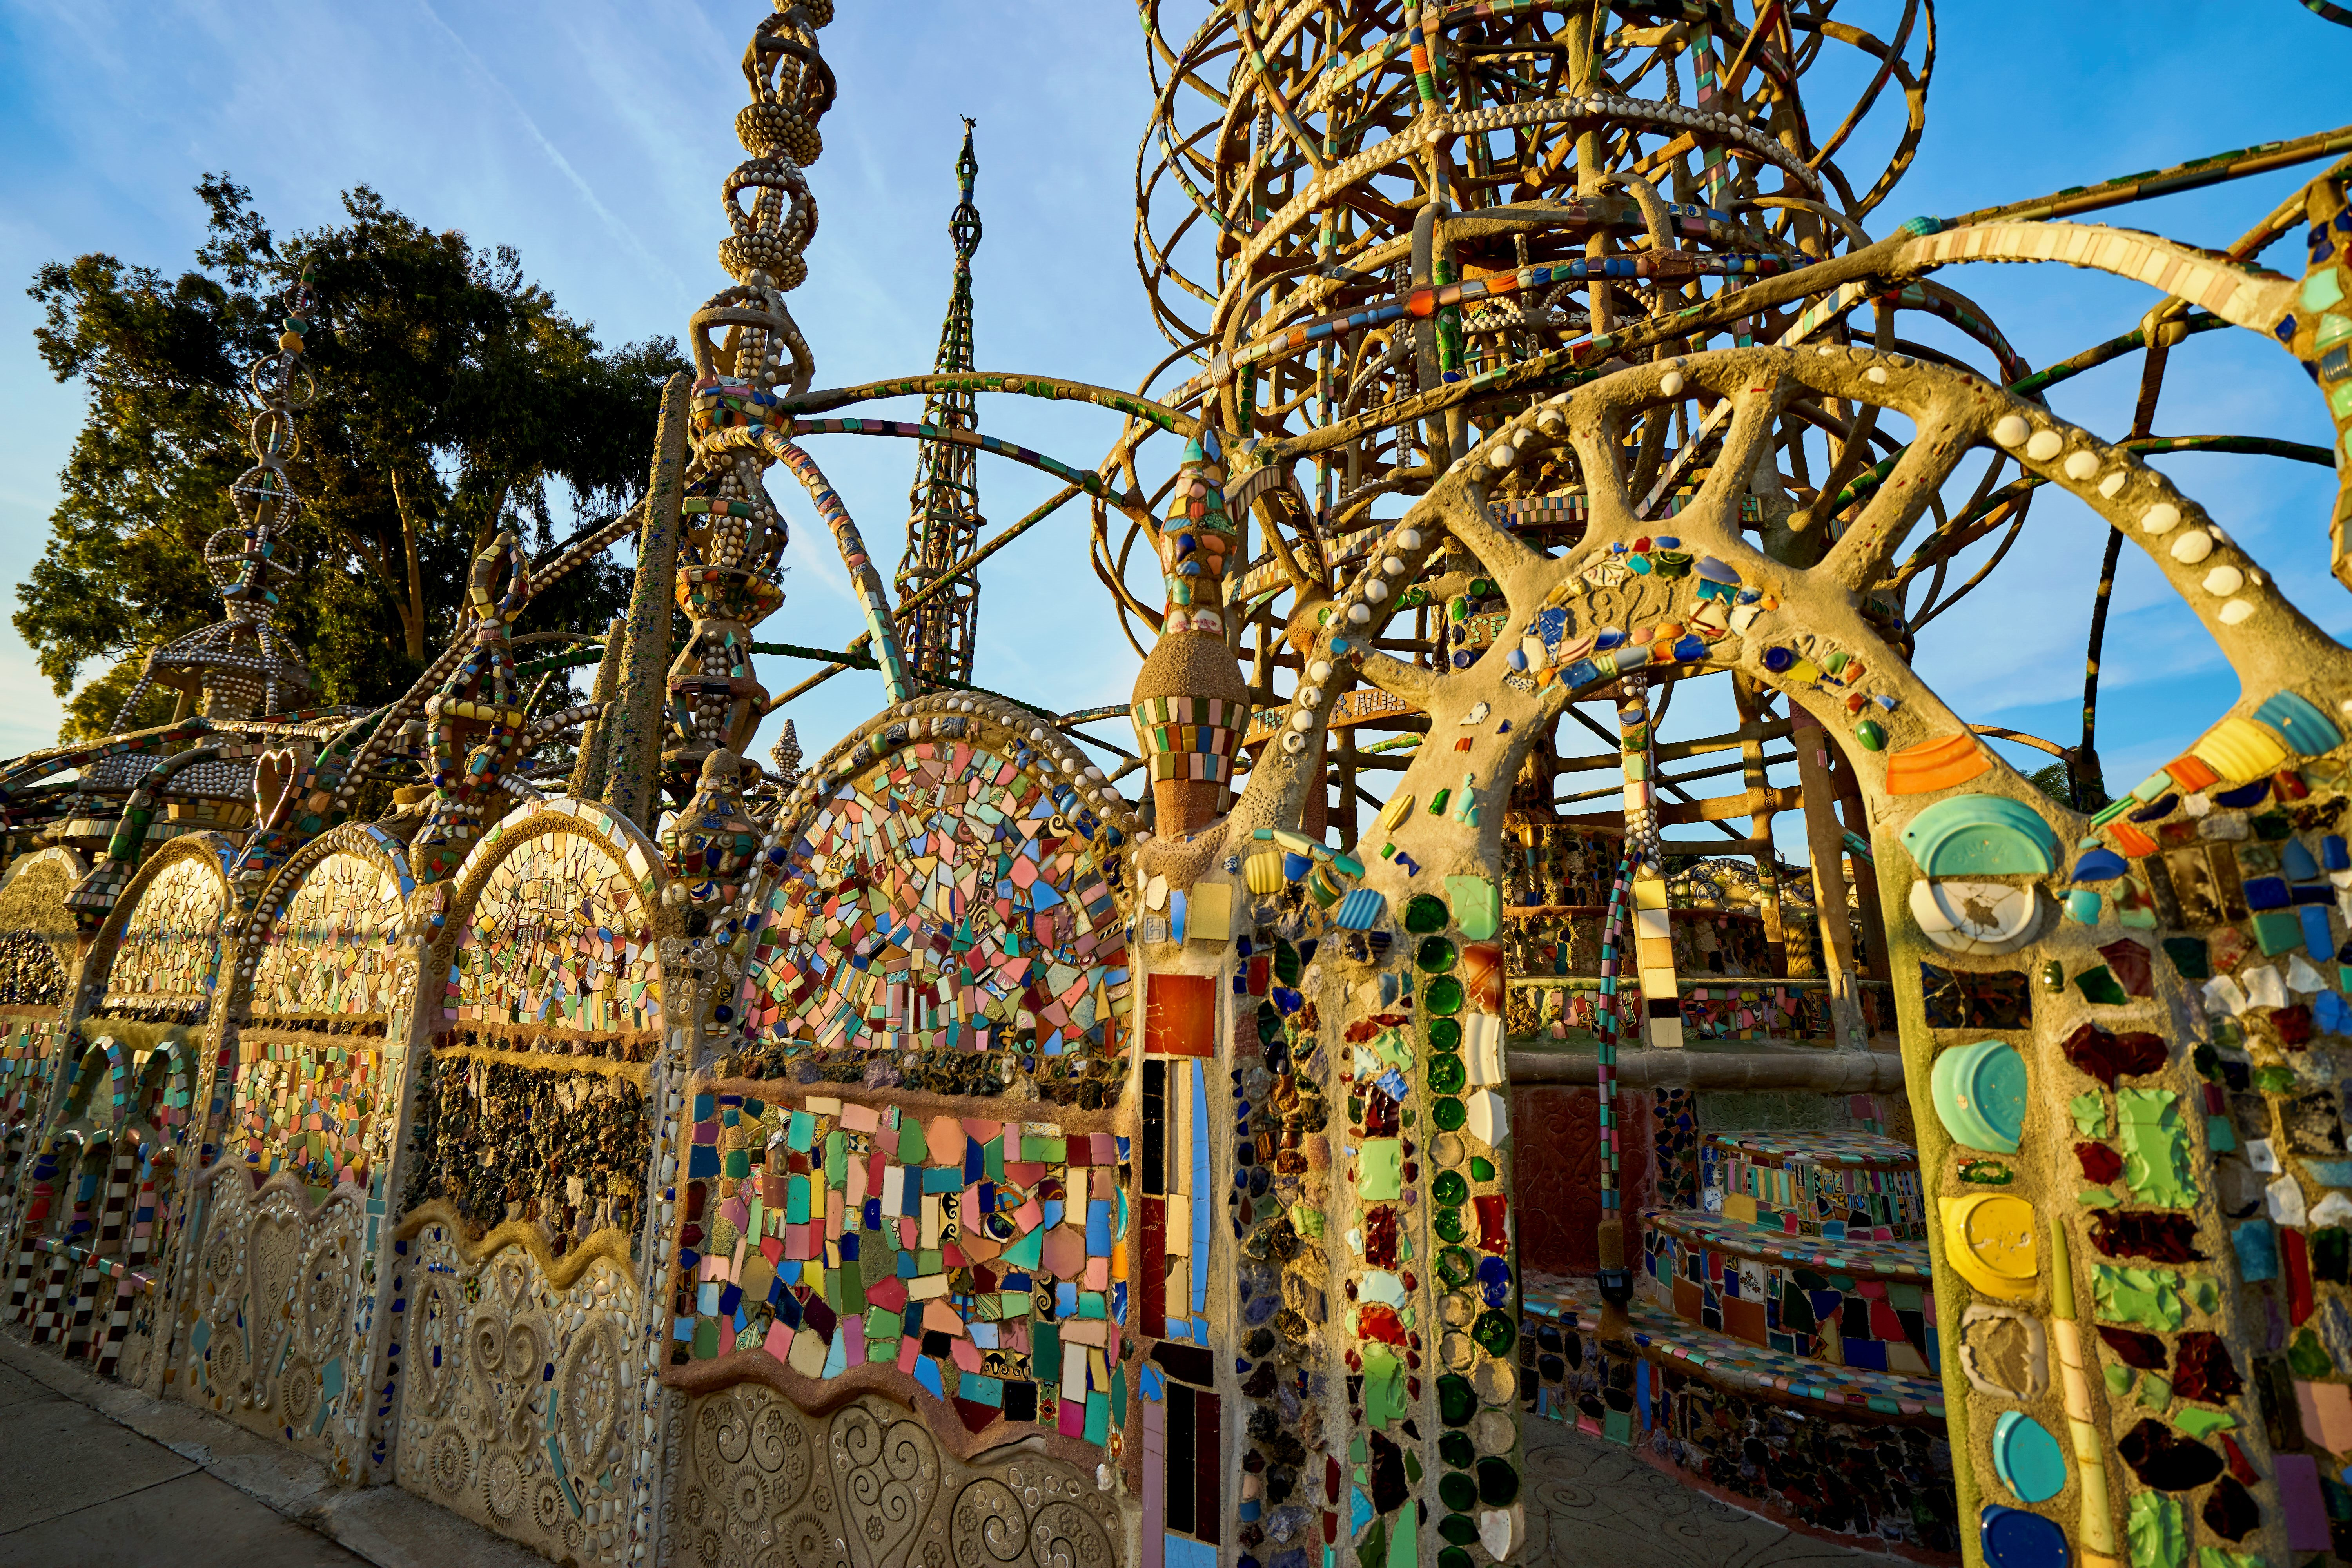 Watts Towers of Simon Rodia State Historic Park by Chris Corey